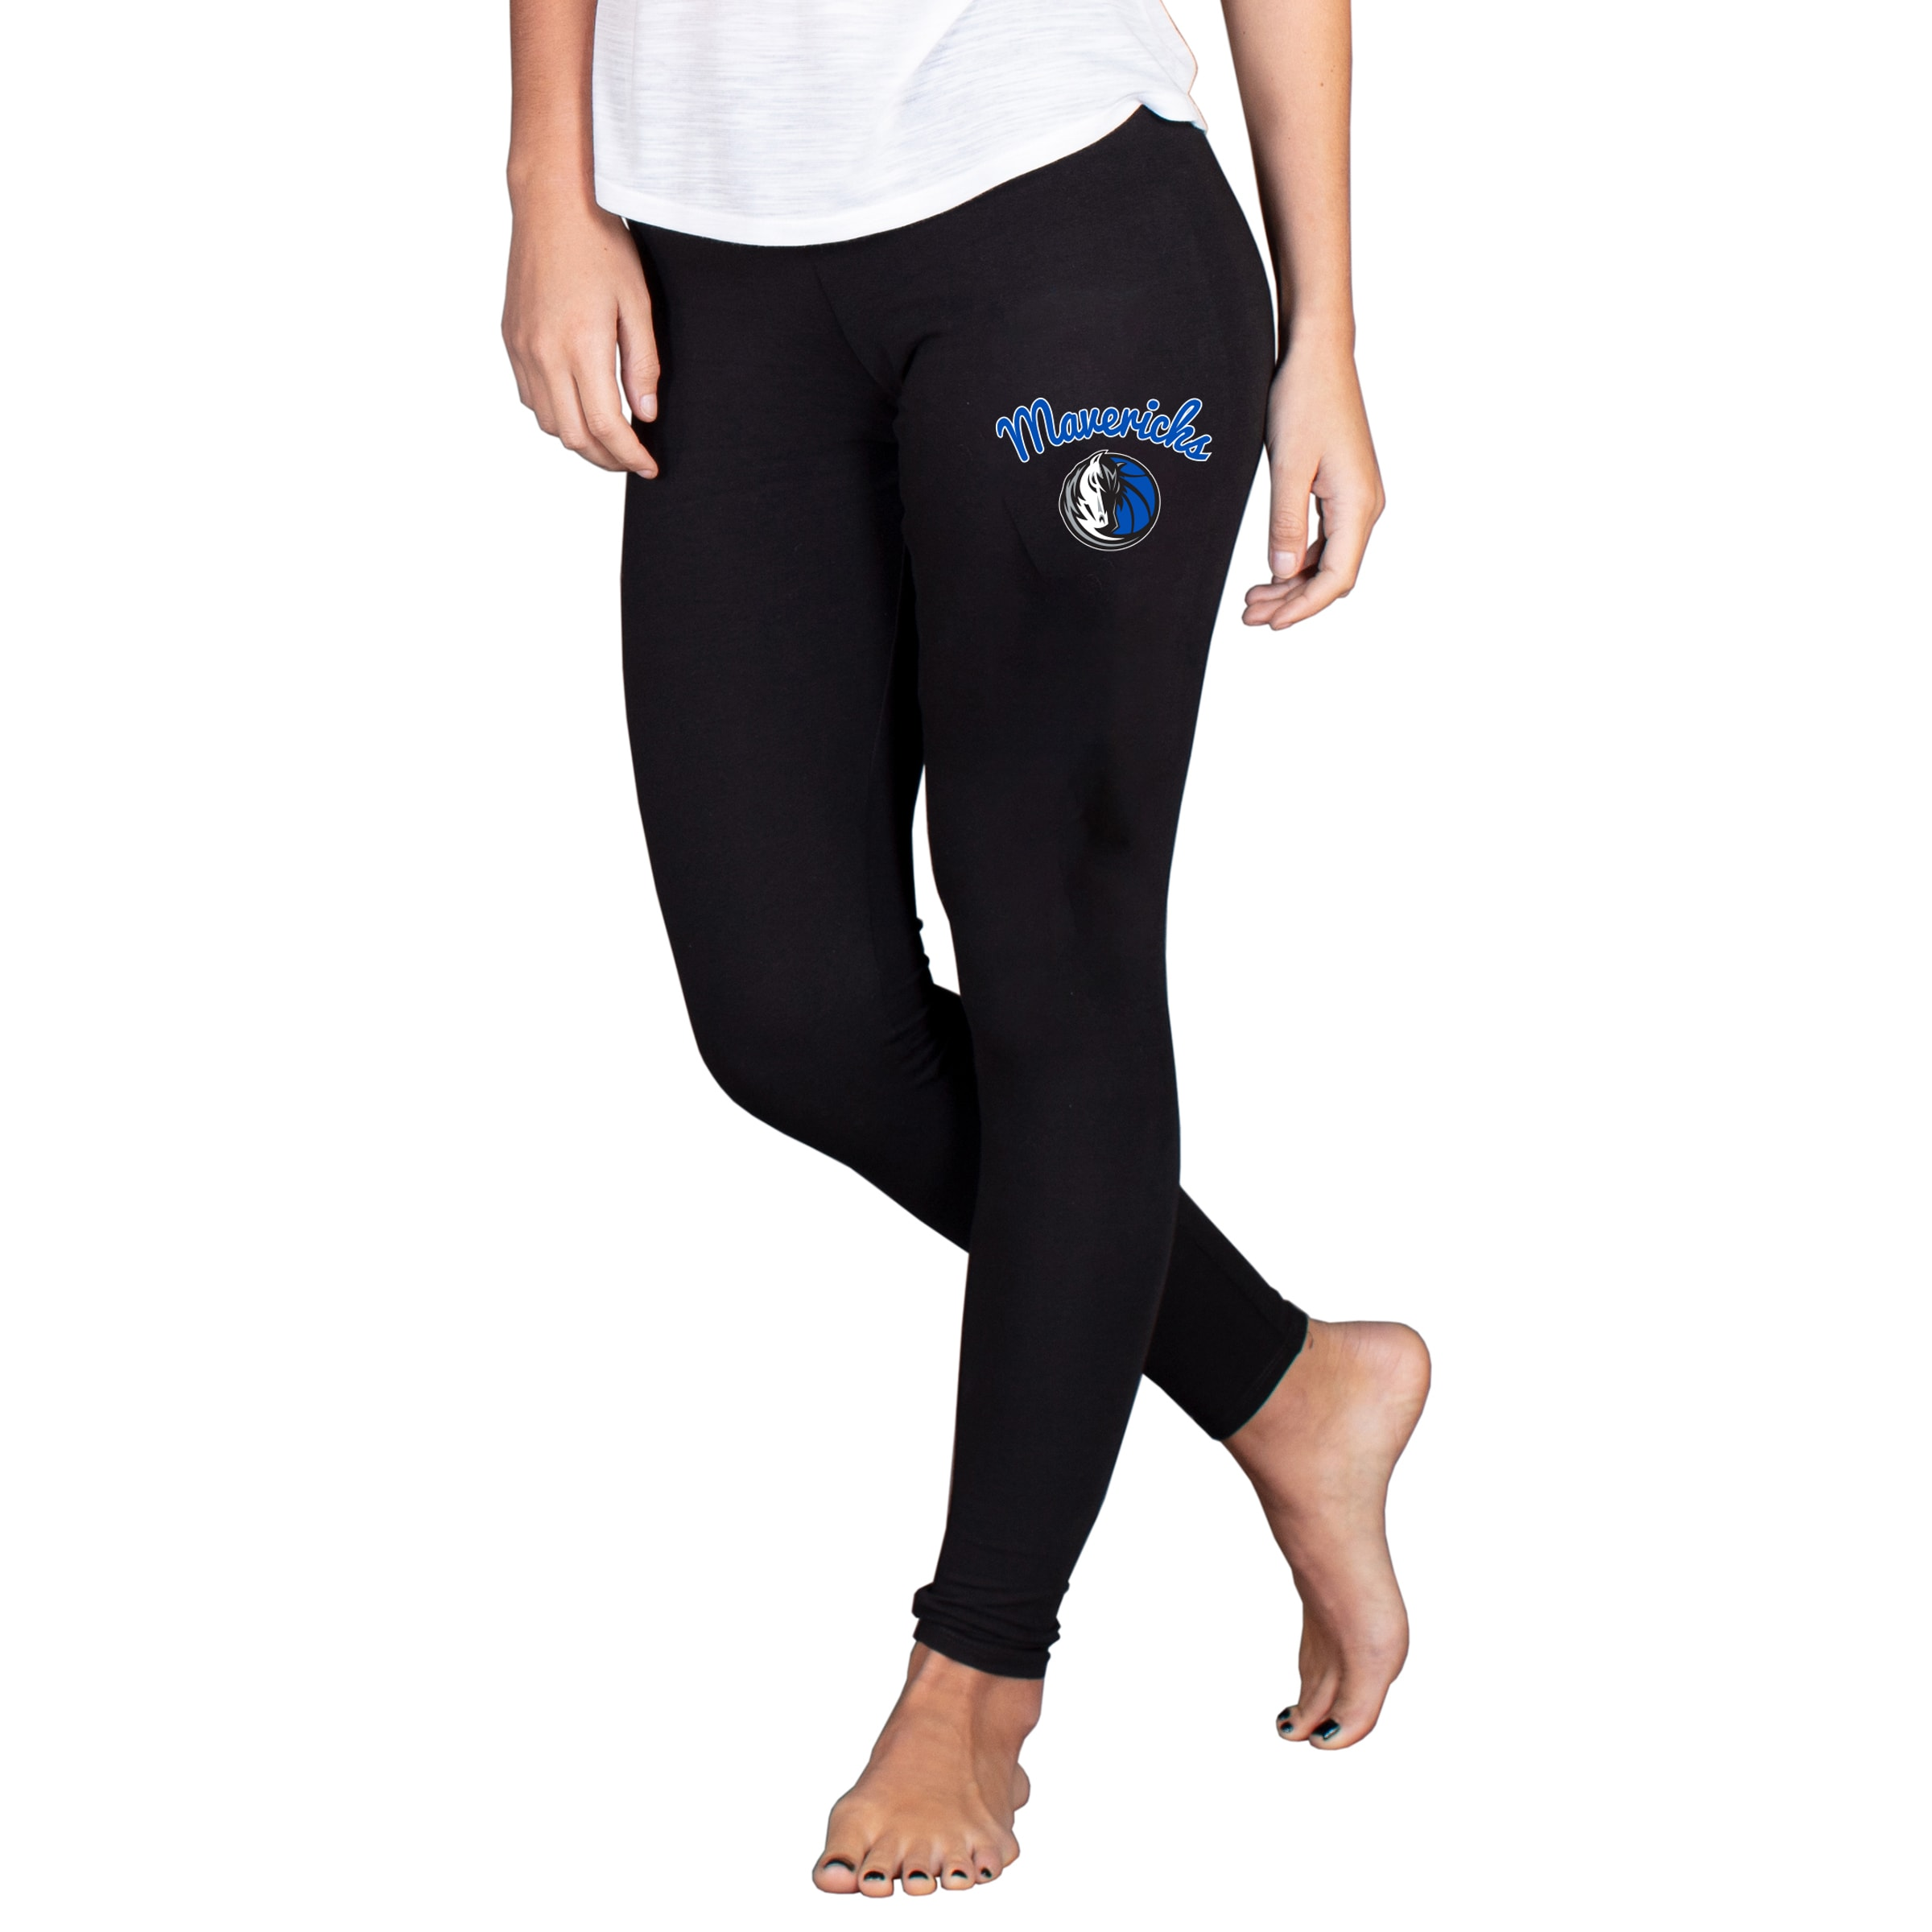 Dallas Mavericks Concepts Sport Women's Fraction Leggings - Black